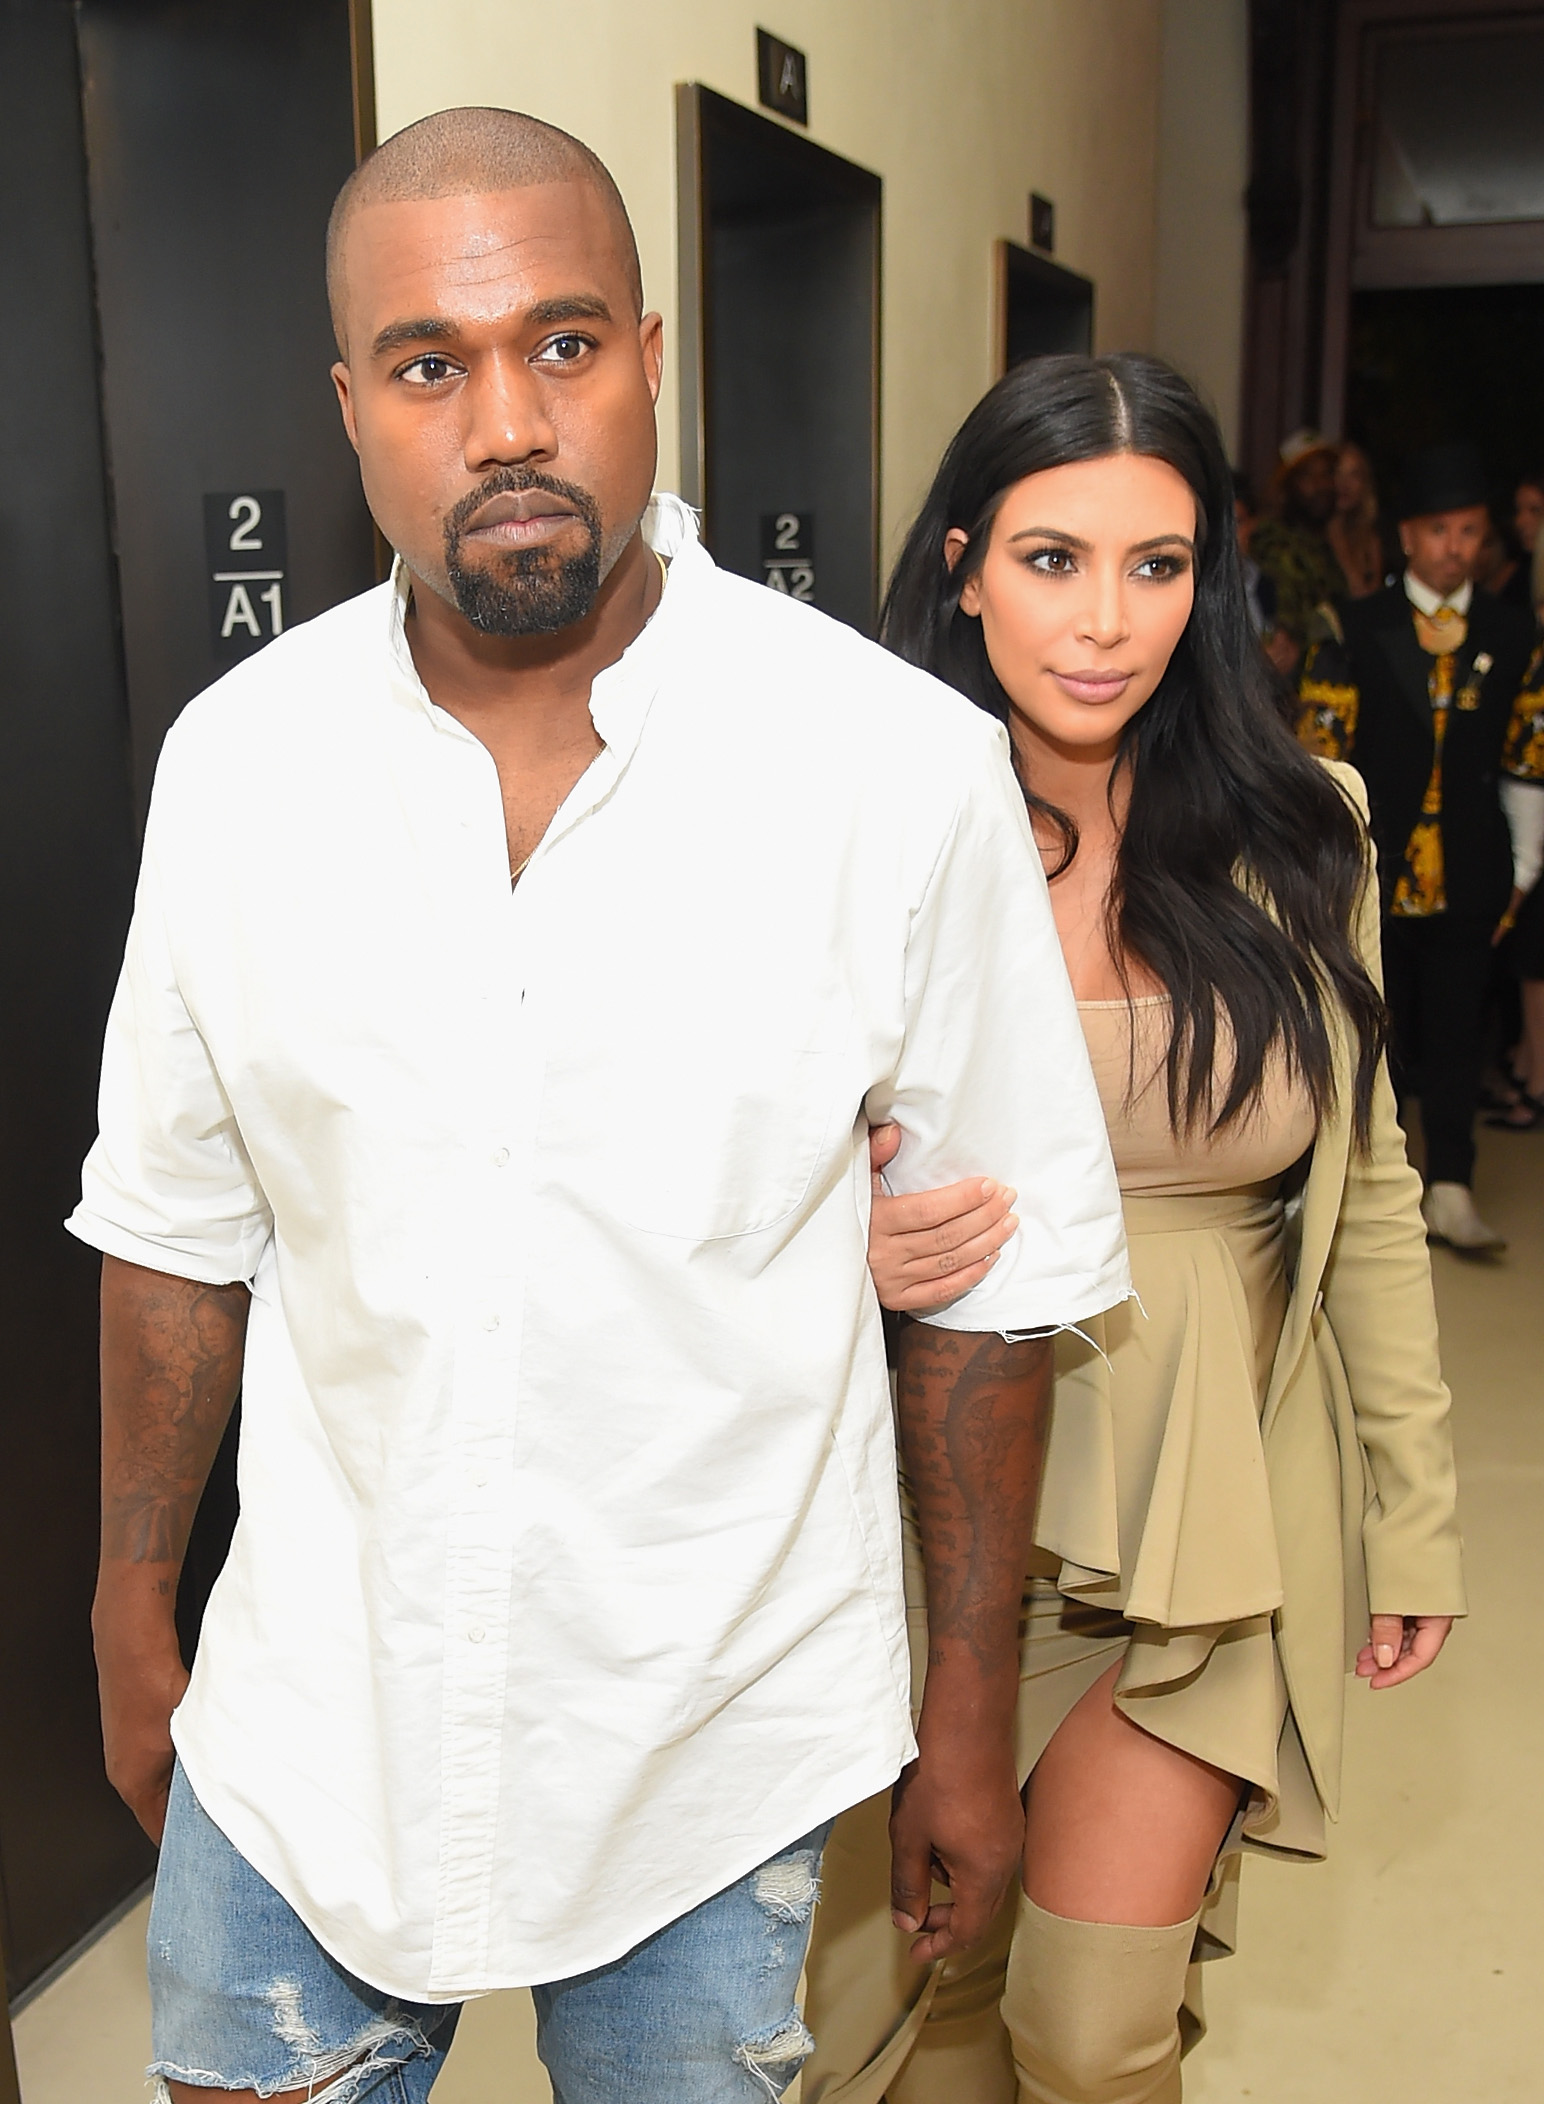 Kanye West and Kim Kardashian-West attend the Rihanna Party at The New York Edition on September 10, 2015, in New York City. (Getty Images)